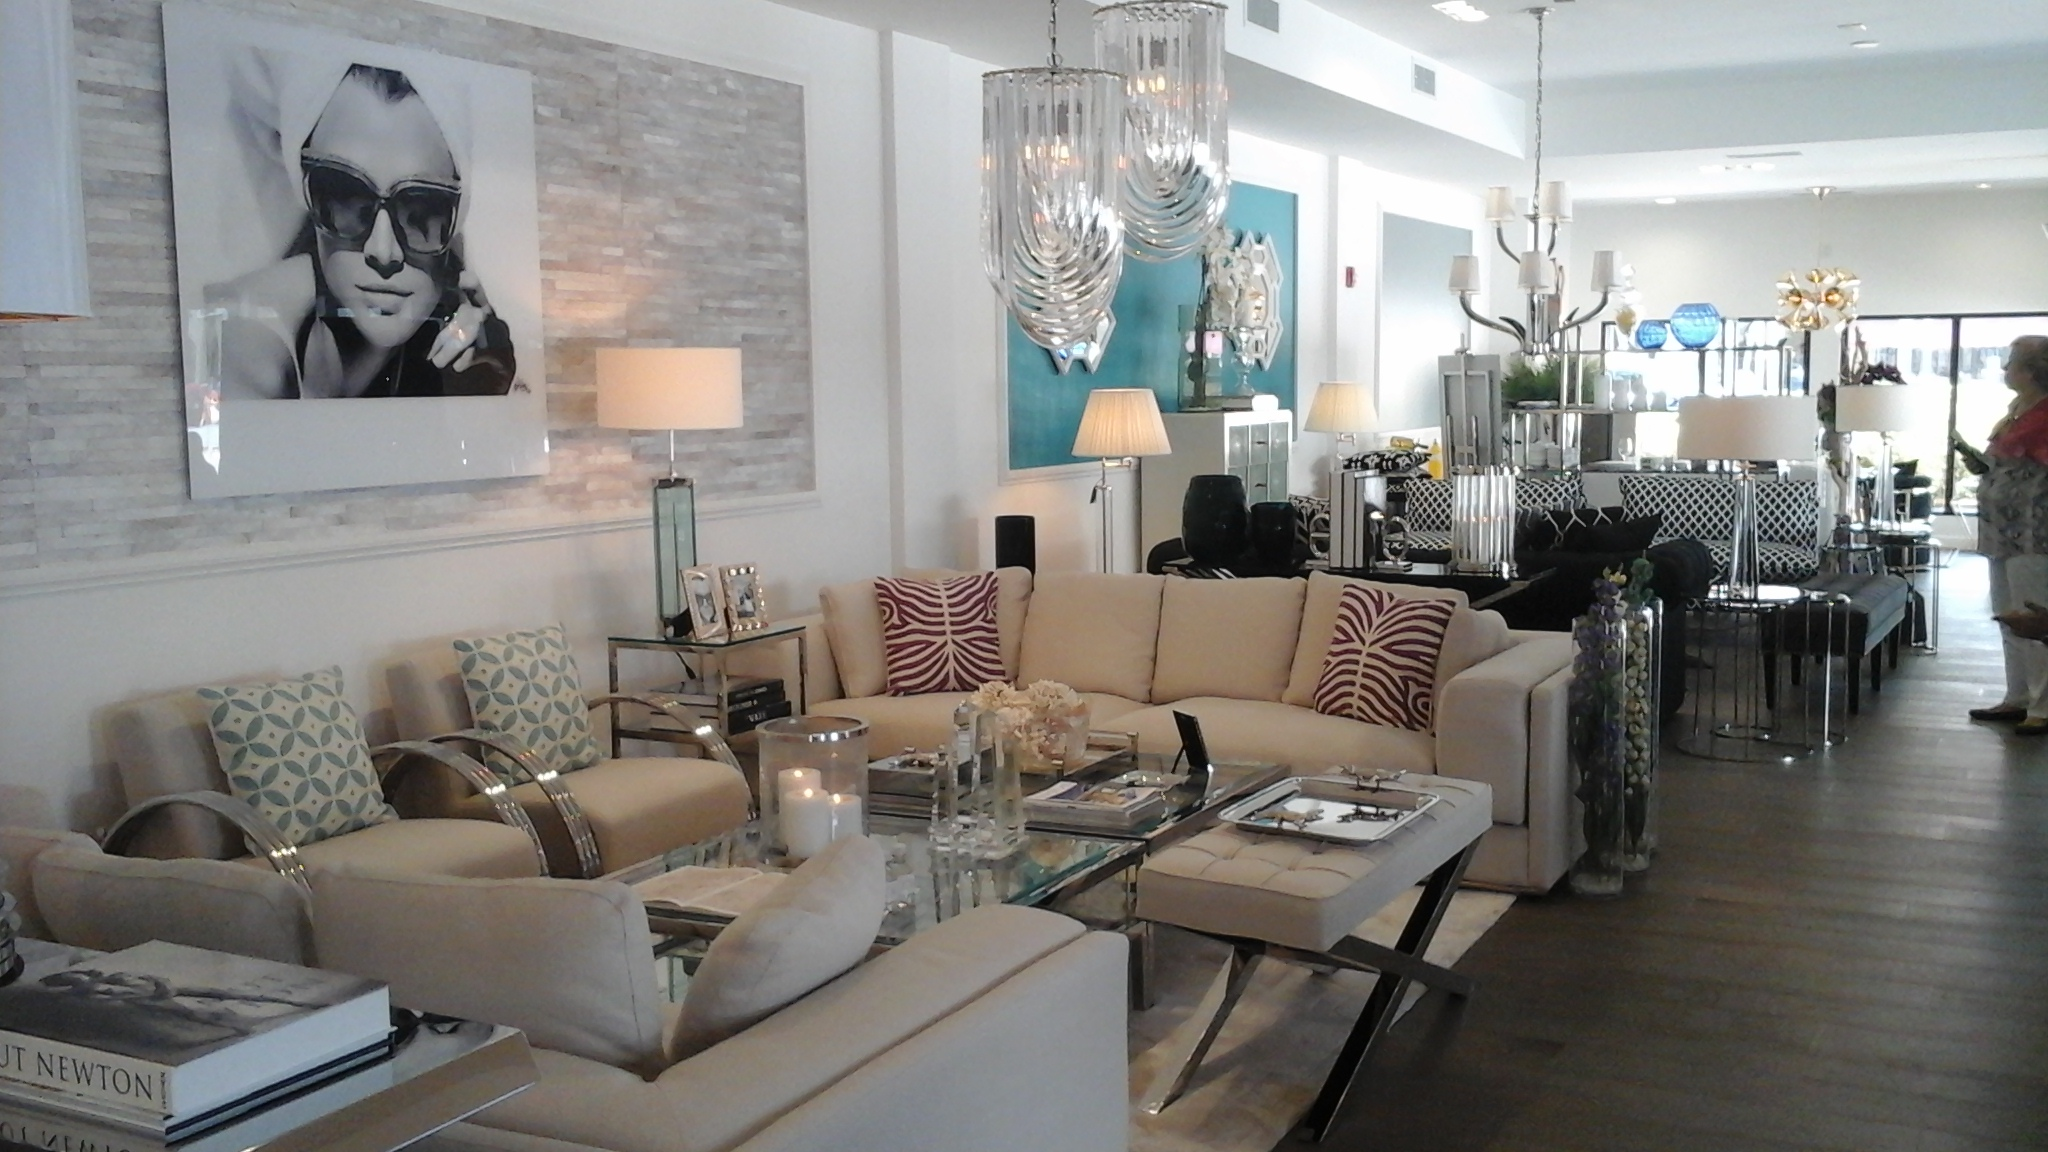 Browse Our Coral Gables Home Furnishings And Gift Store Today.